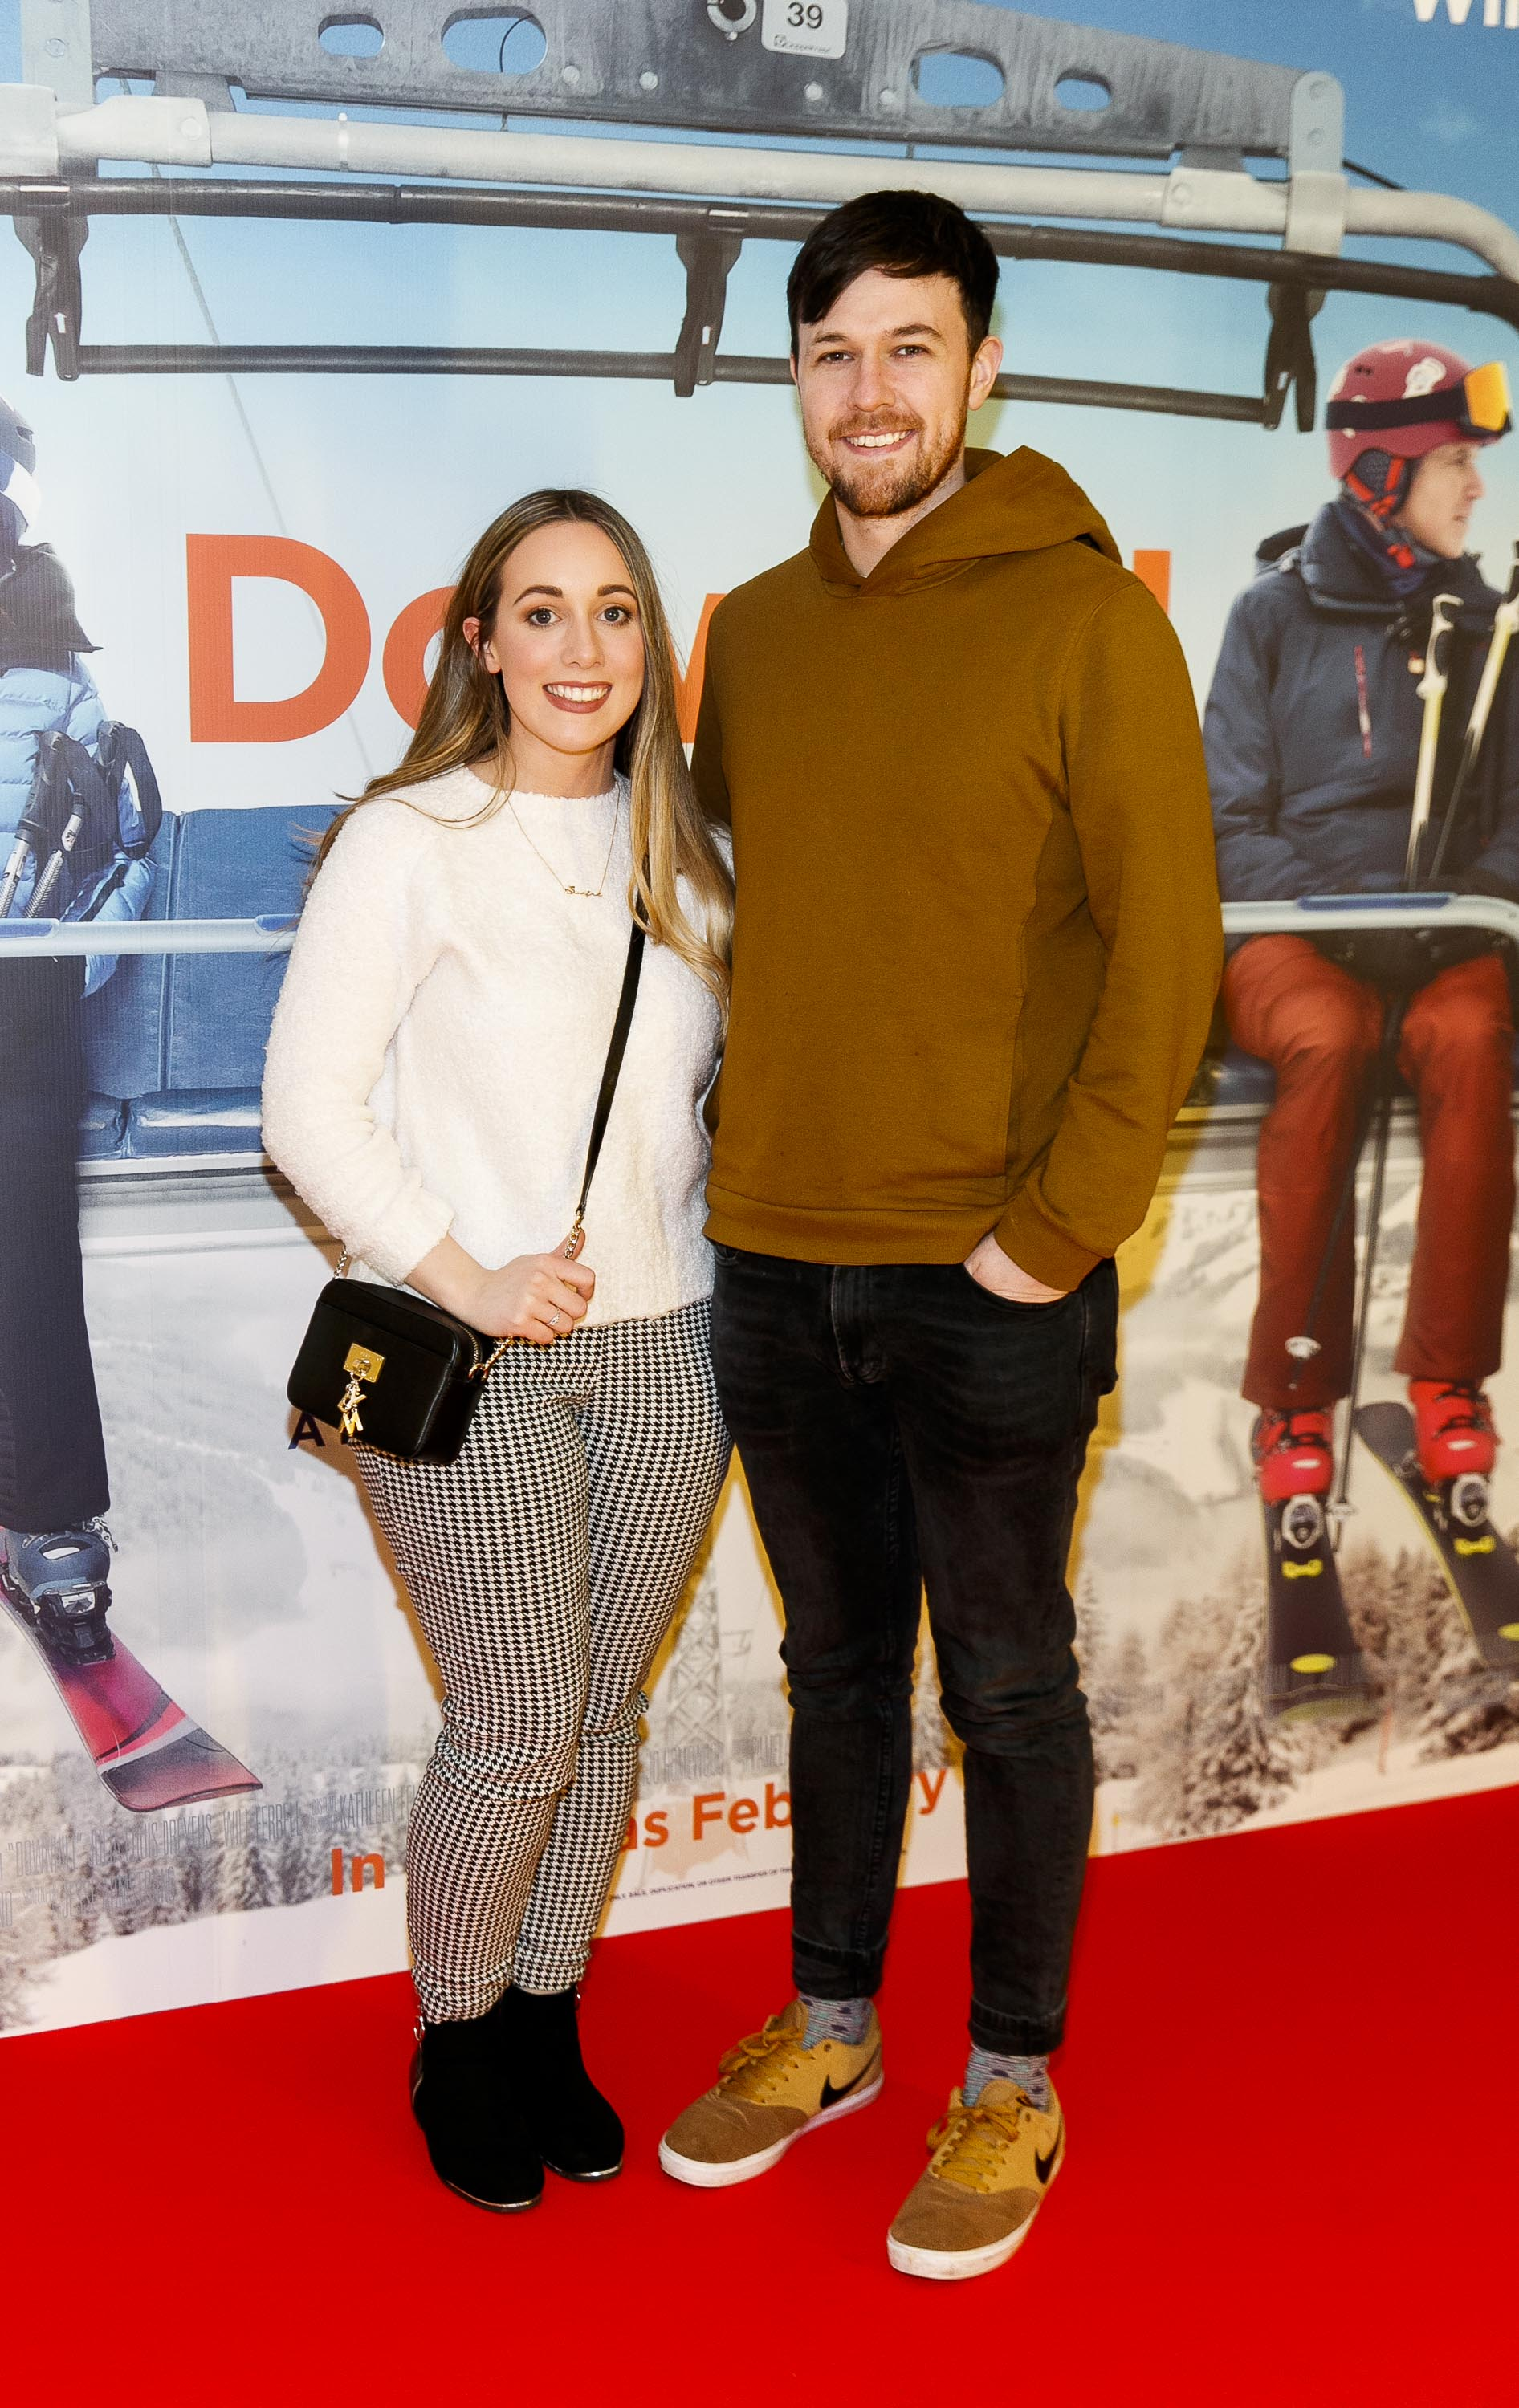 Siofra Colleran and  Brian Tighe pictured at a special preview screening of Downhill at the Light House Cinema, Dublin. Picture: Andres Poveda.